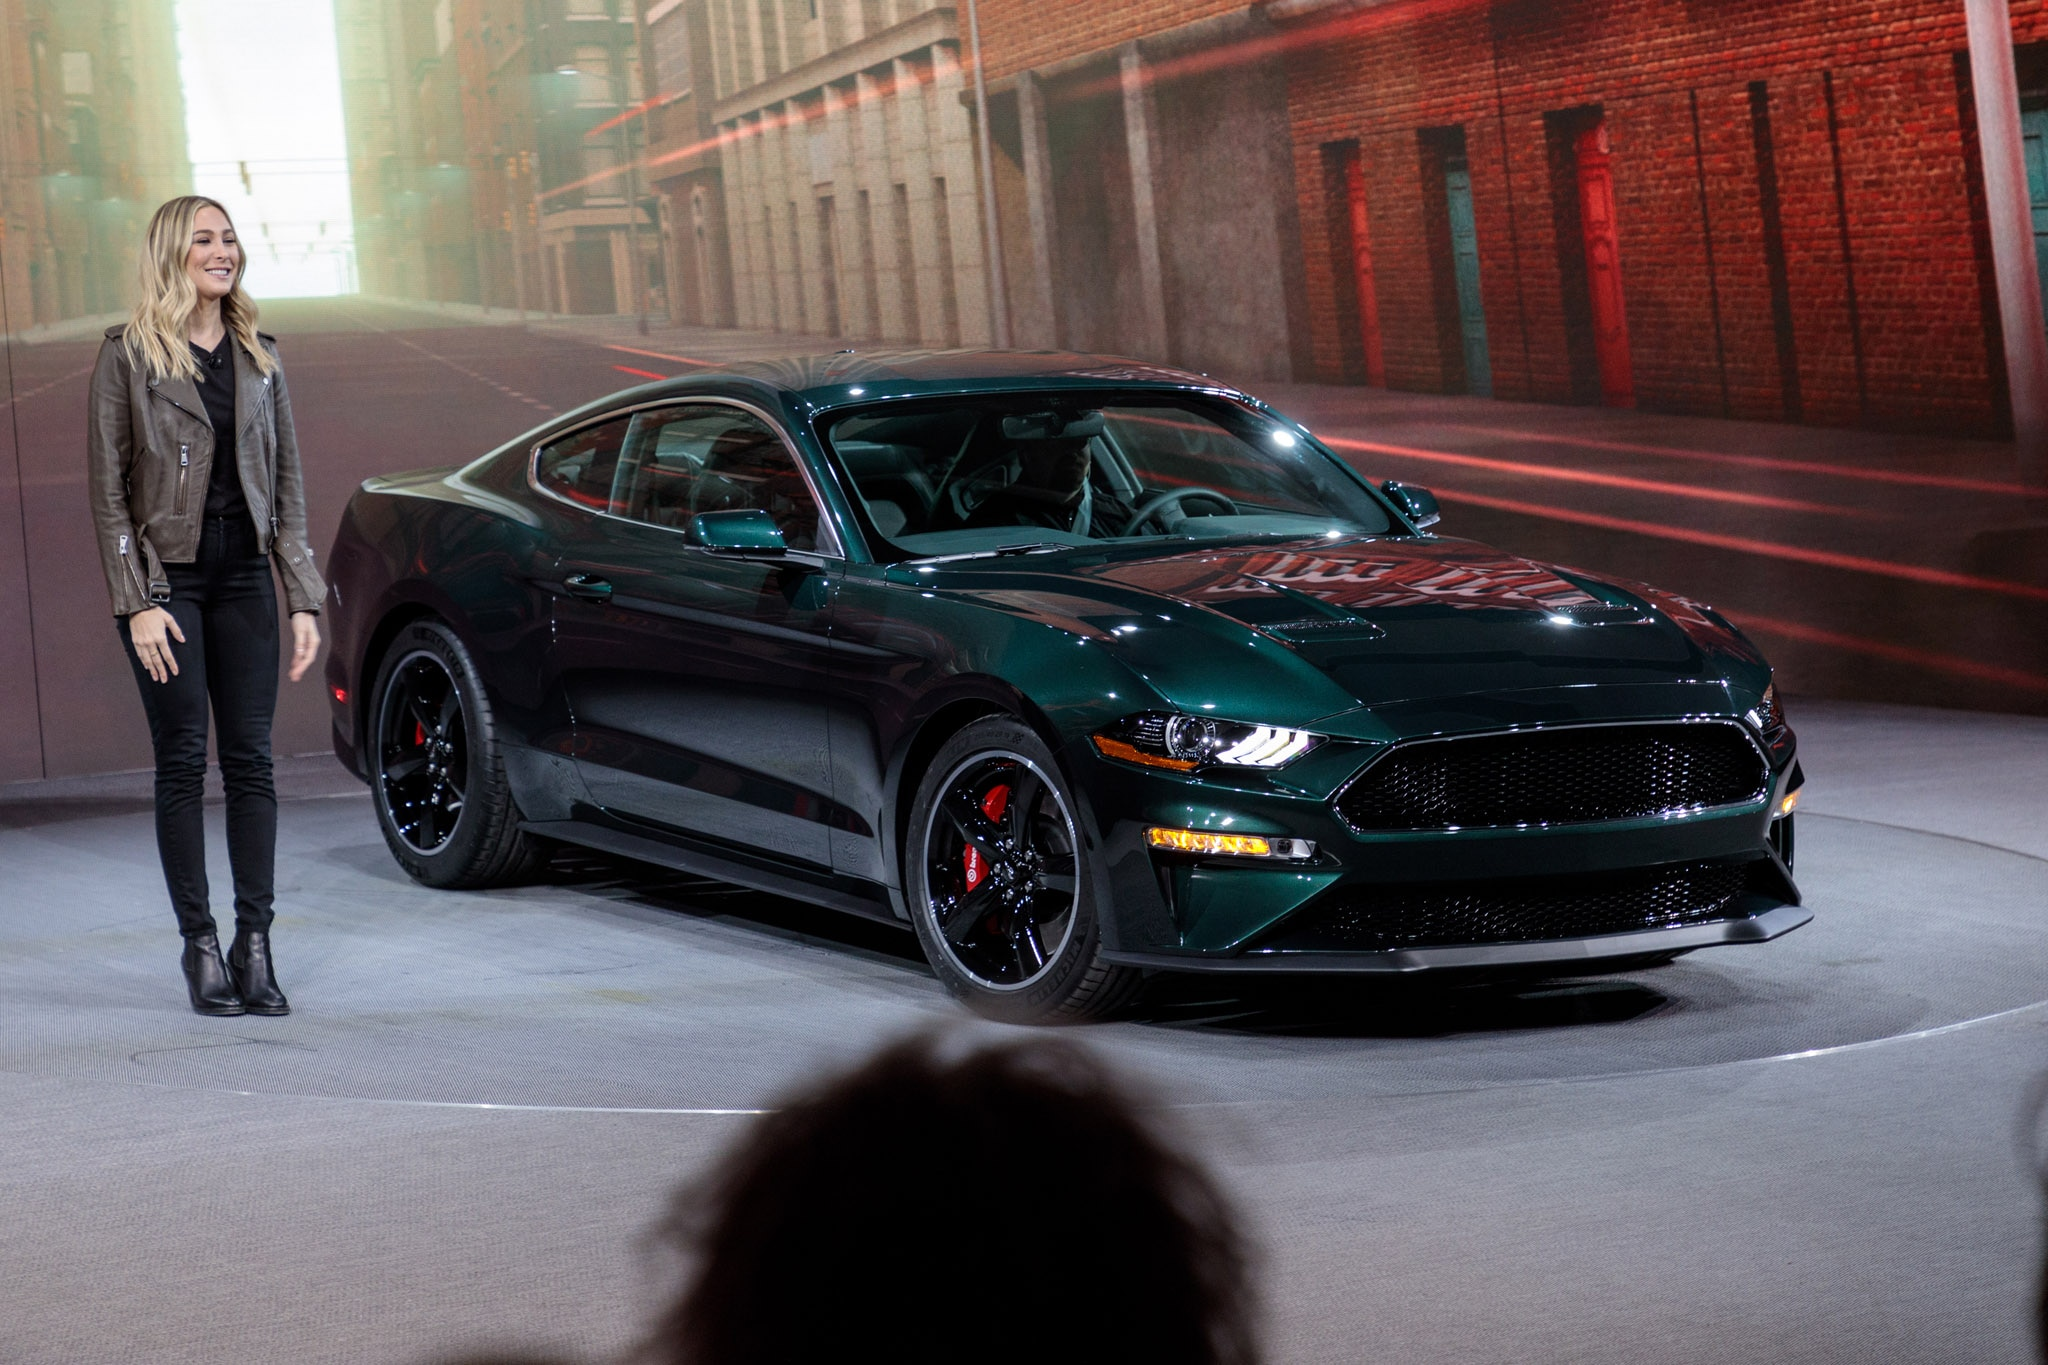 molly mcqueen drives up in 2019 ford mustang bullitt. Black Bedroom Furniture Sets. Home Design Ideas